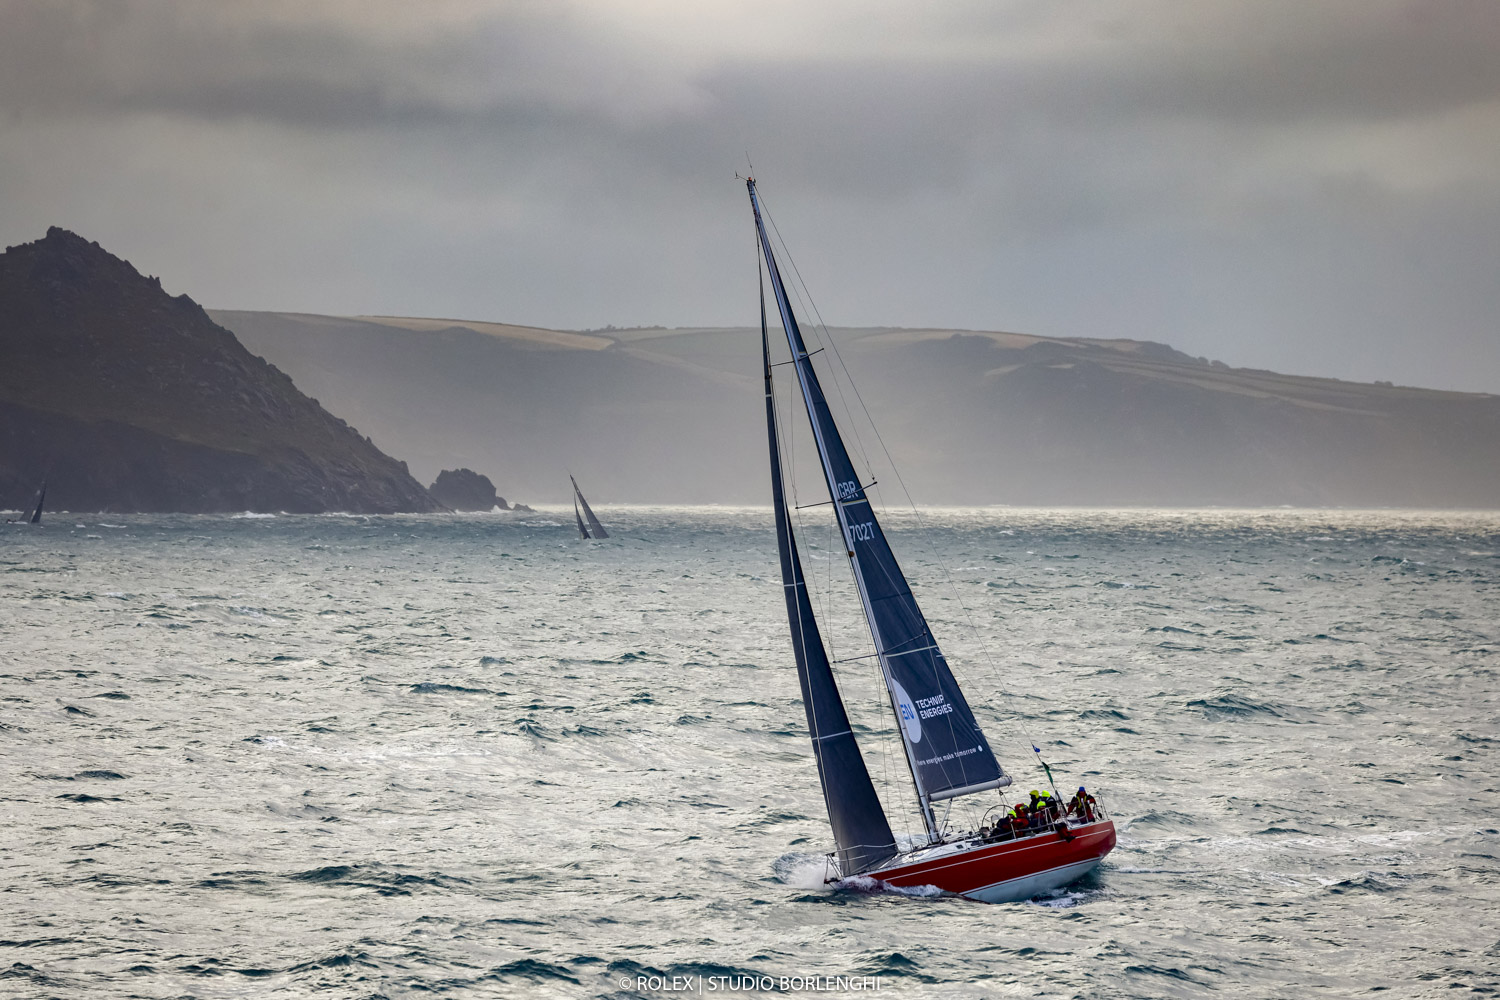 Ross Applebey's Lightwave 48 Scarlet Oyster sailing in IRC Two © Carlo Borlenghi/Rolex